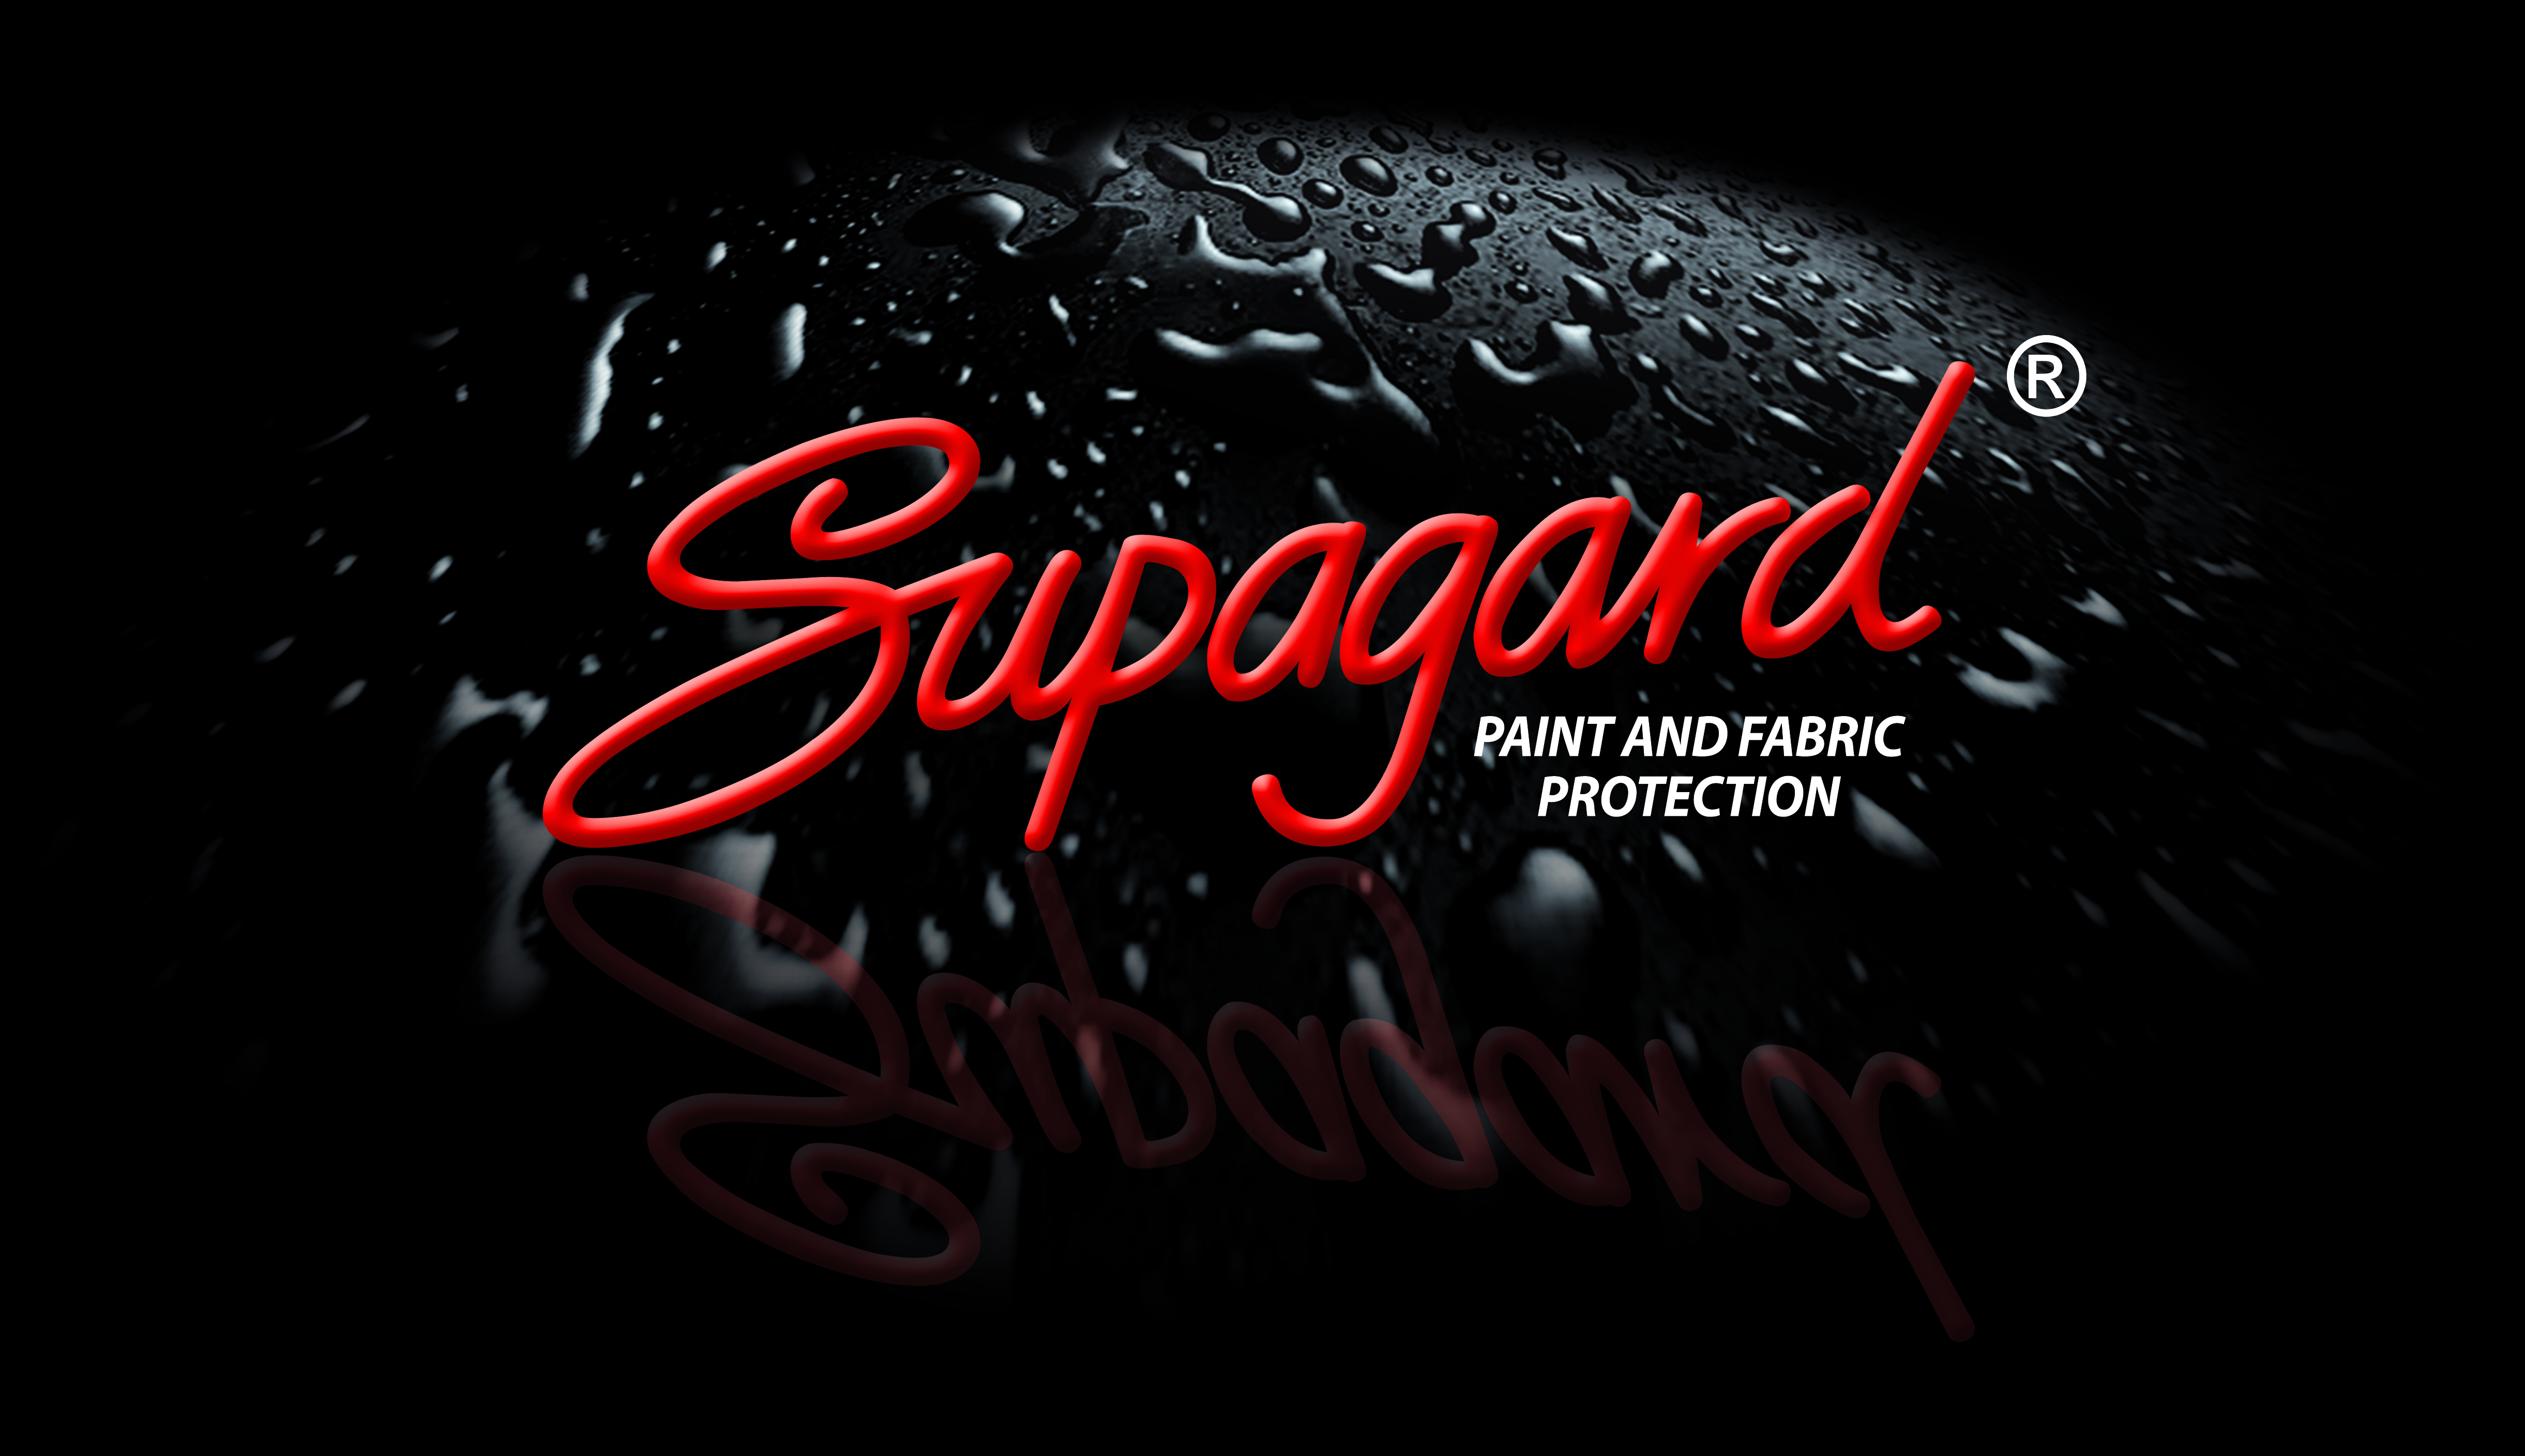 Using Supagard Paint Sealant to Keep Paintwork Looking New